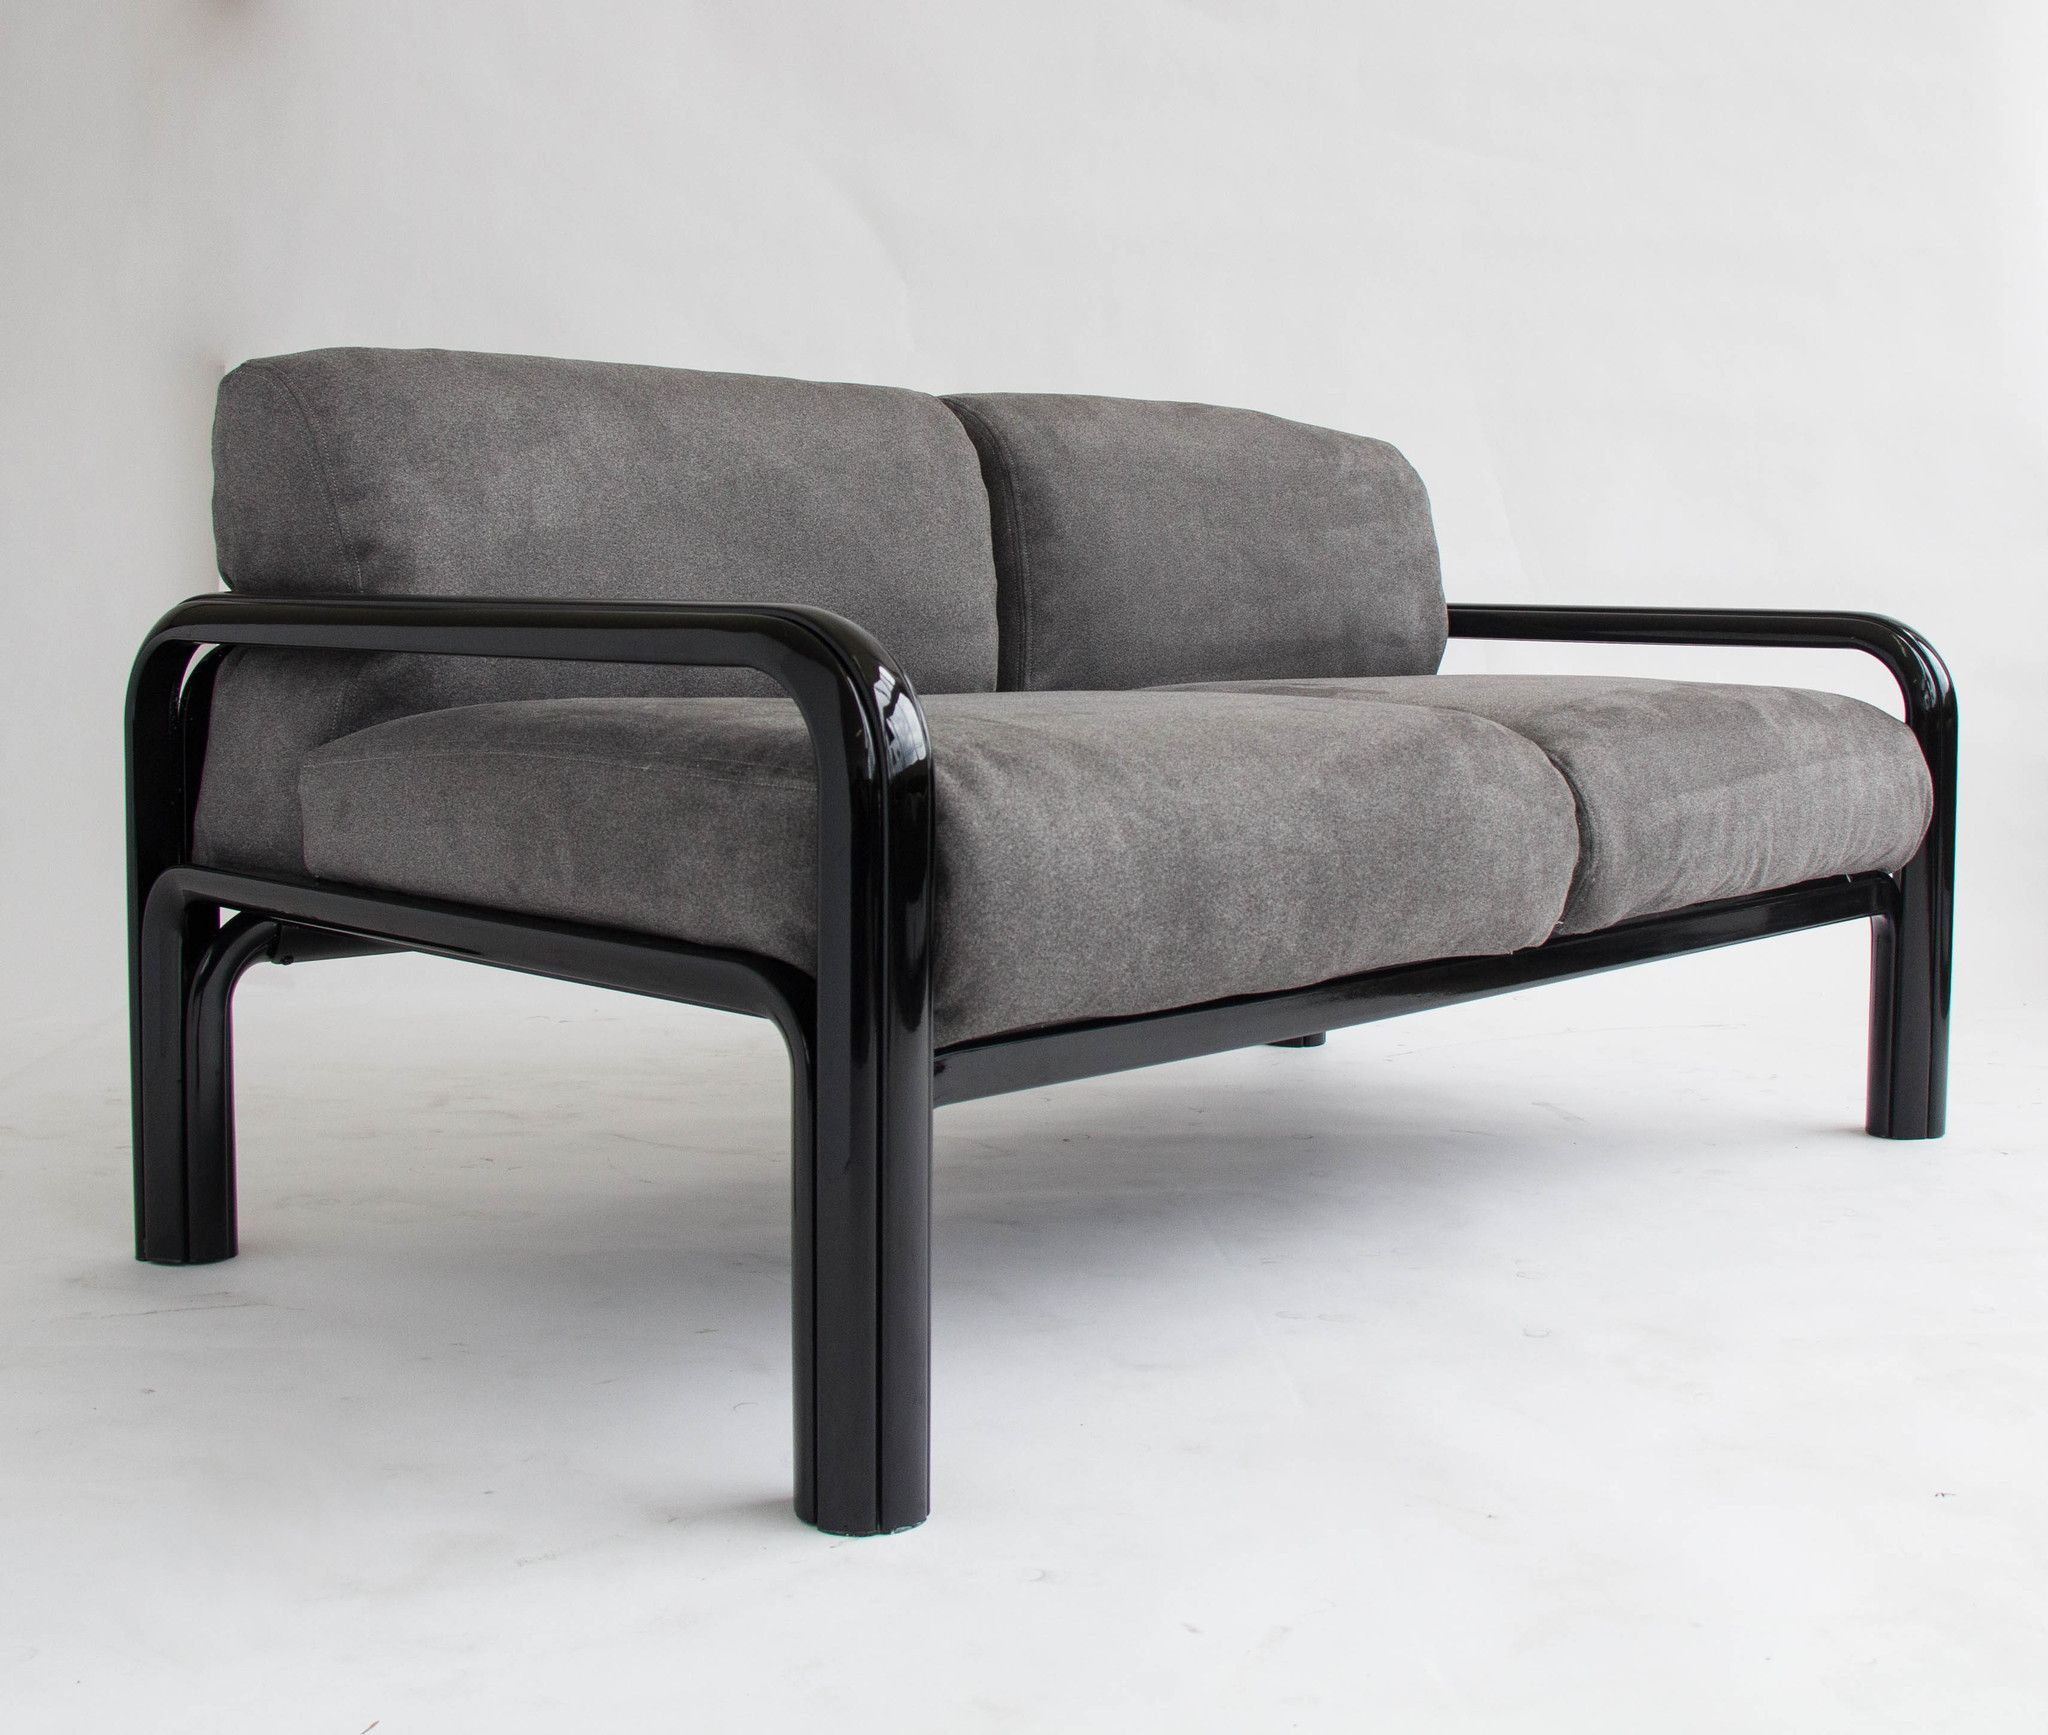 long single loveseat luxury cushions chair and contemporary furniture design attachment sofa sleeper of